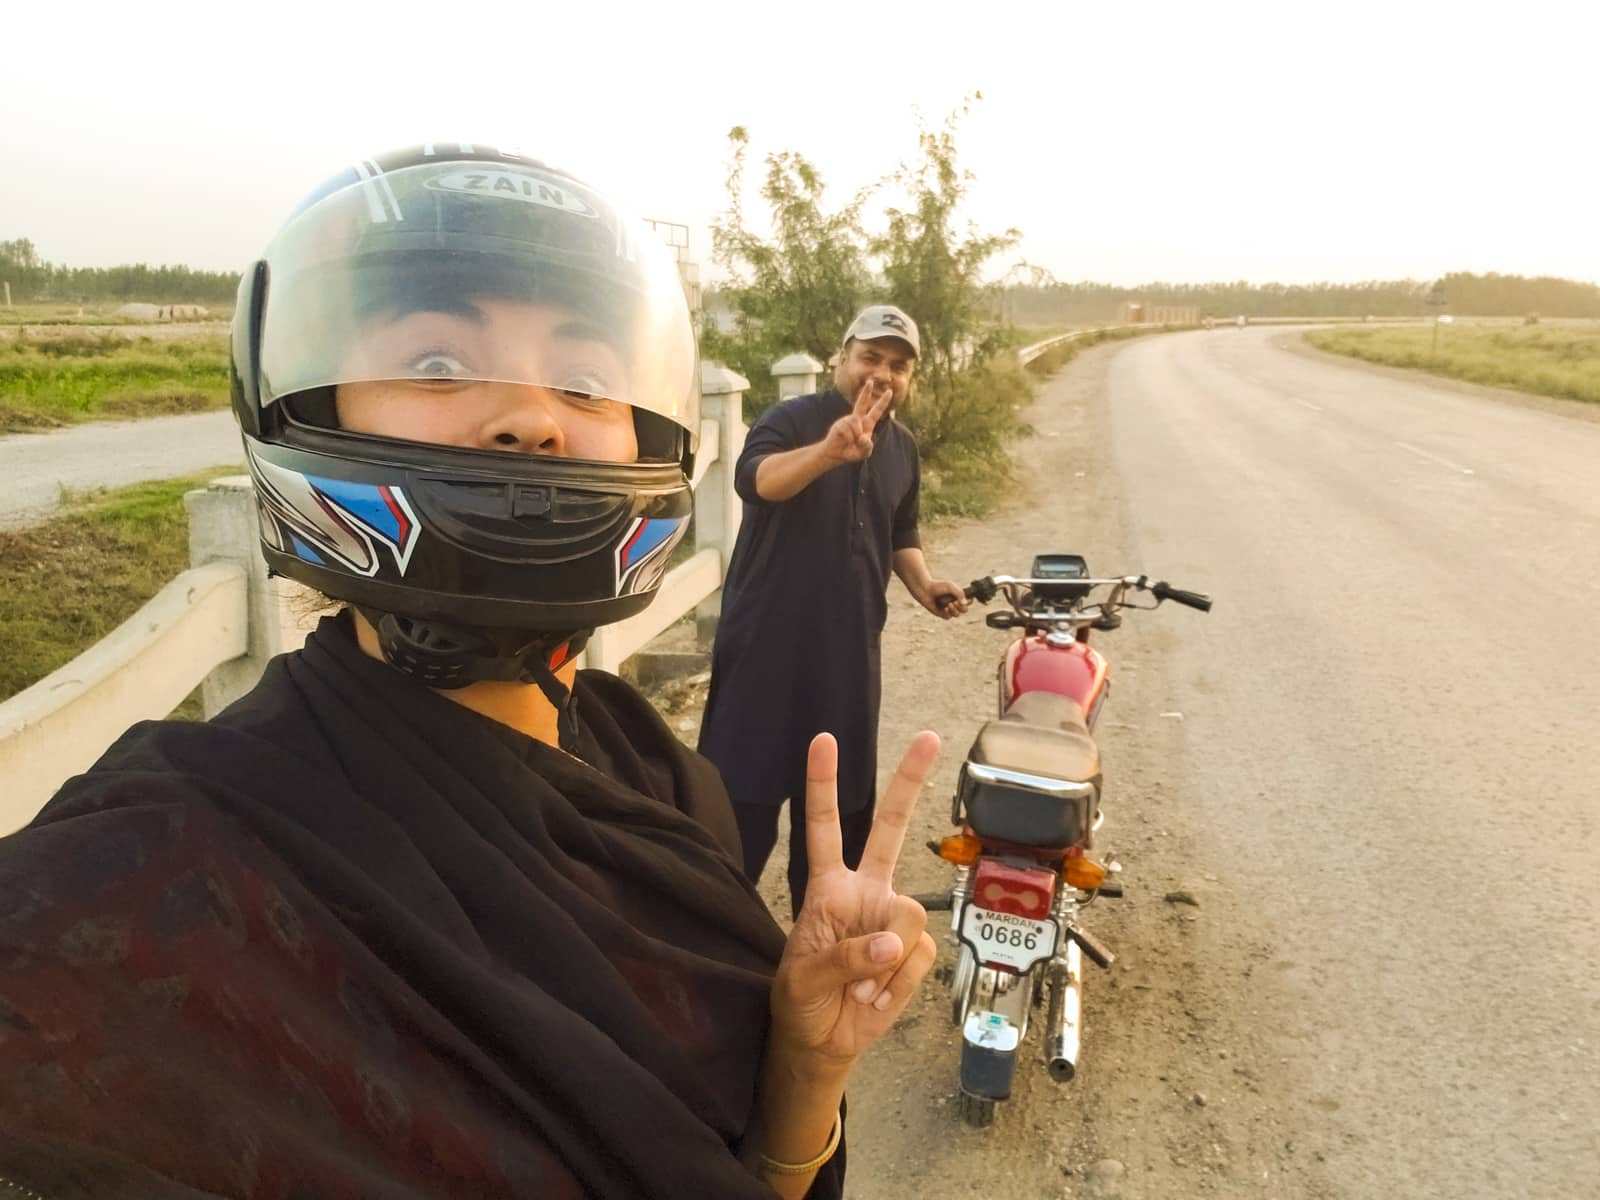 Motorbiking as a woman in Pakistan - Selfie with man and motorbike in Khyber Pakhtunkhwa - Lost With Purpose travel blog